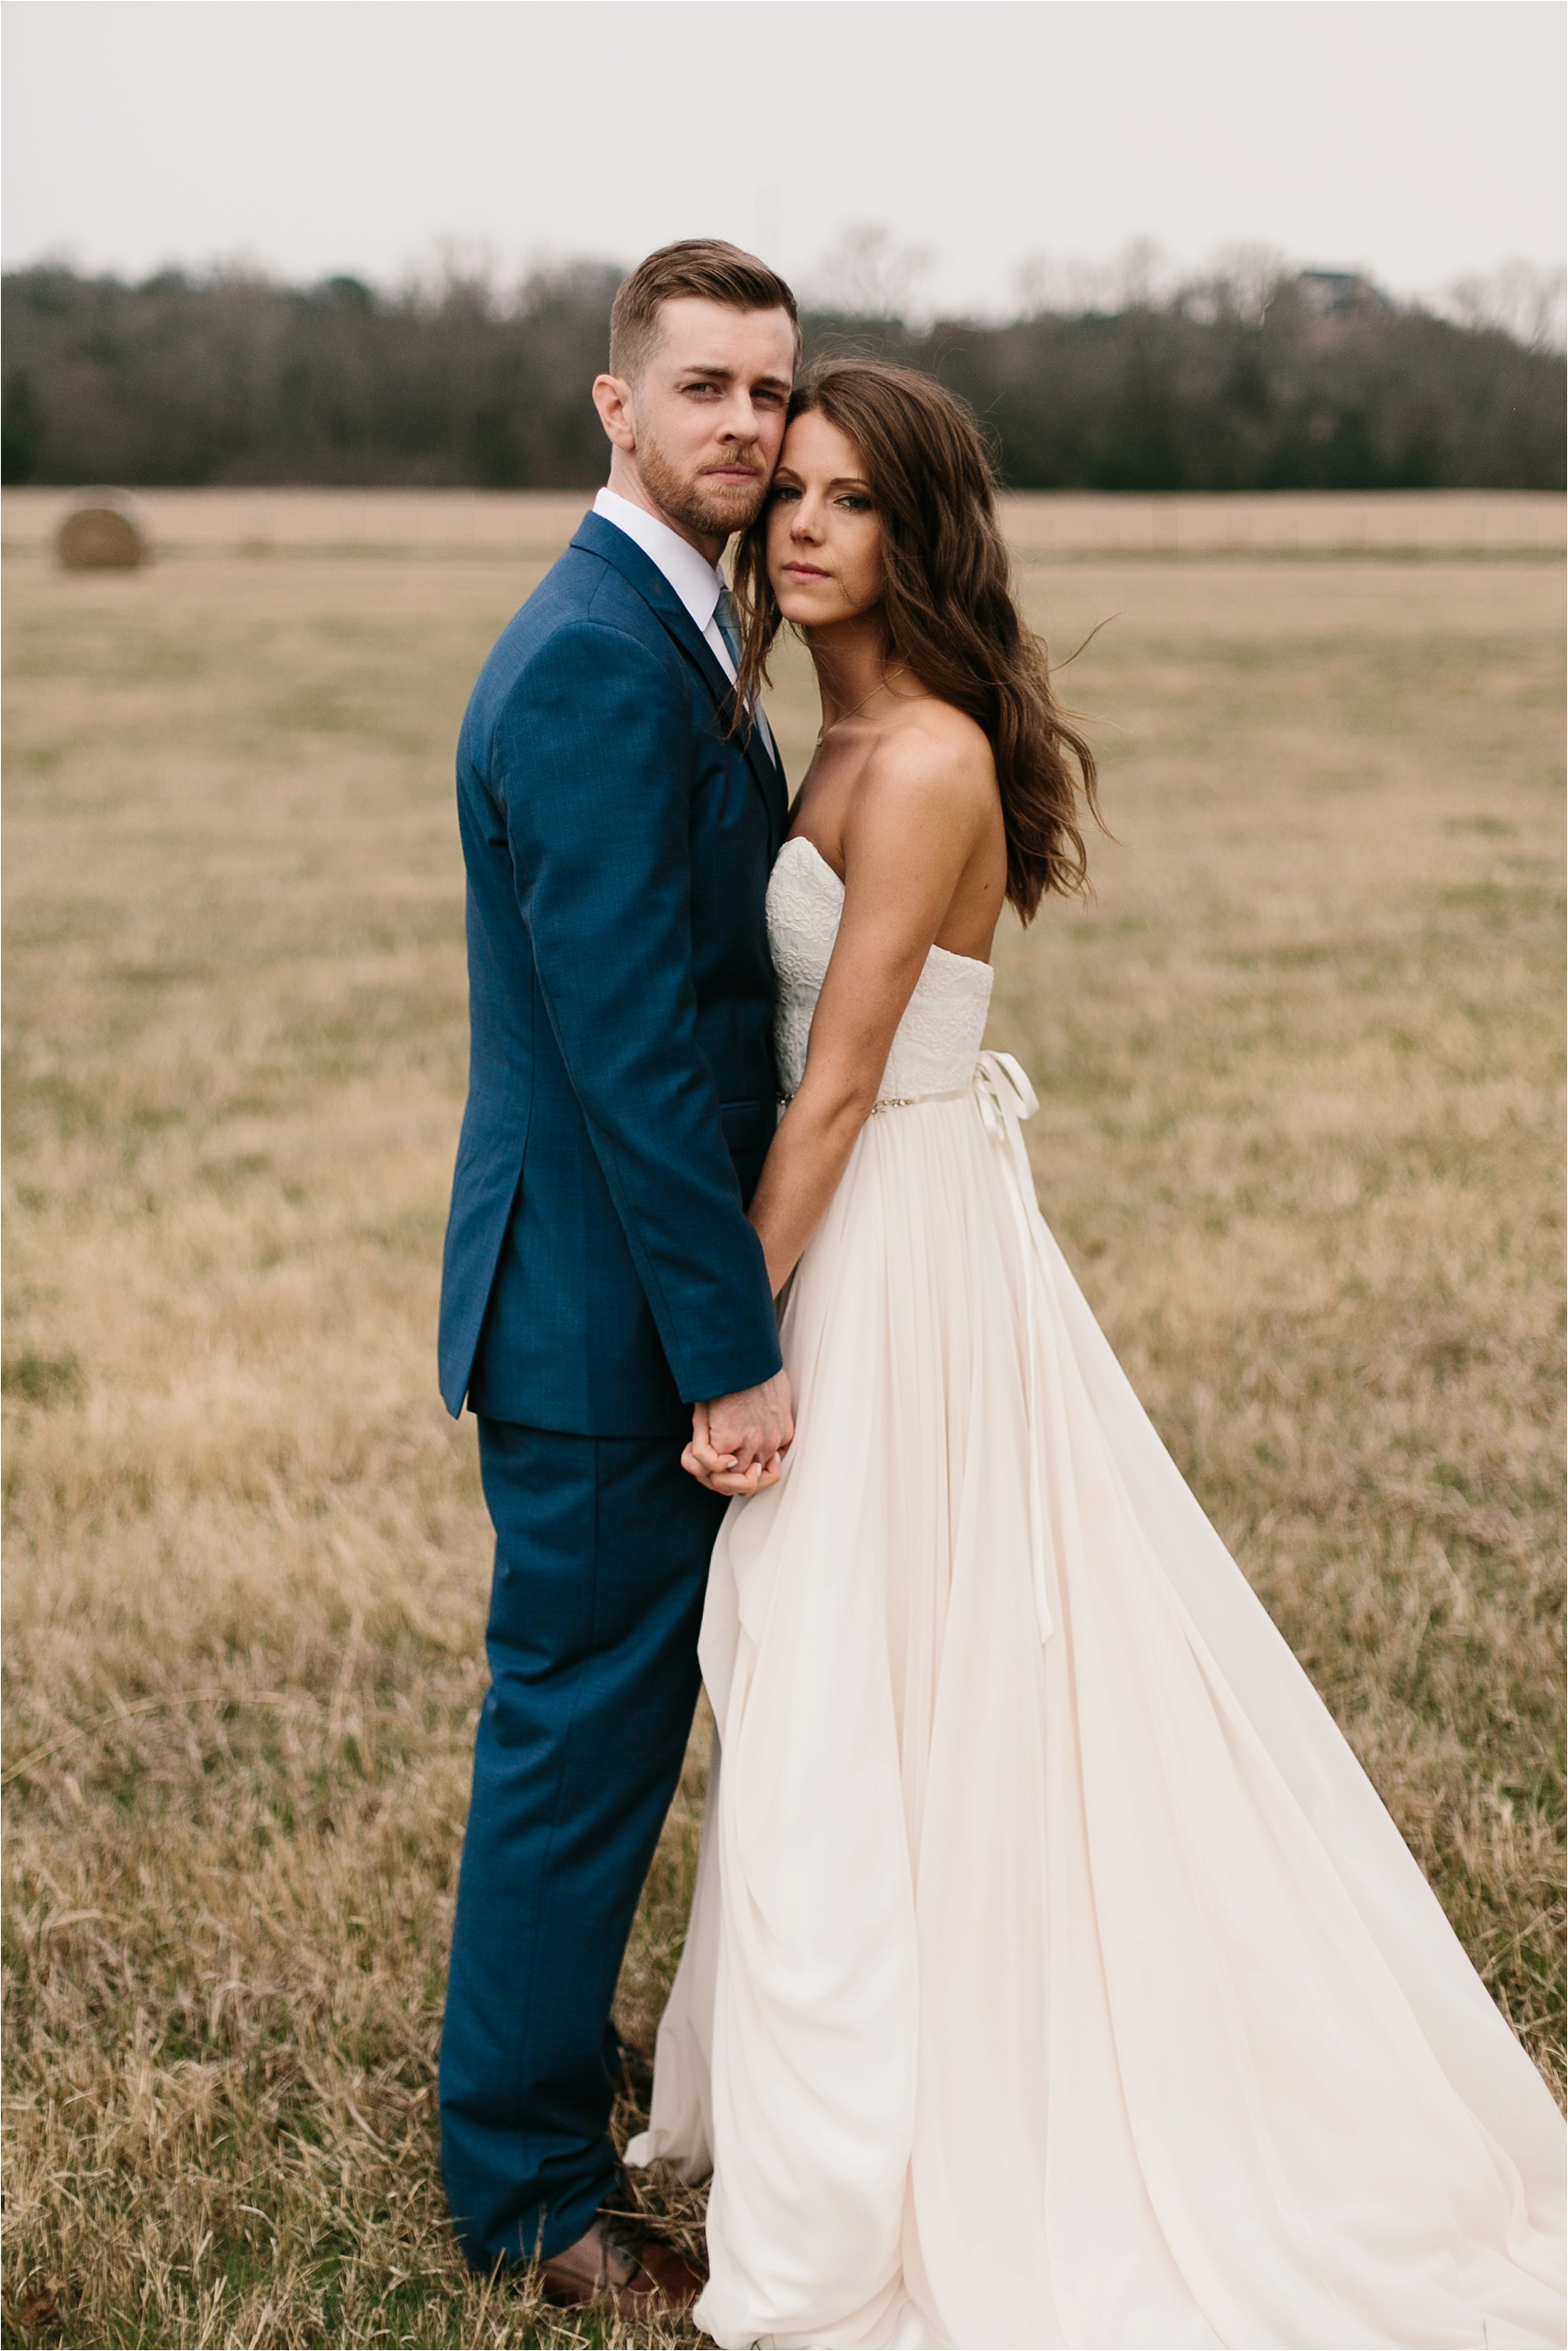 Lauren + Matt __ an intimate, emotional, blush pink, navy blue, and greenery toned wedding accents at the Brooks at Weatherford by North Texas Wedding Photographer Rachel Meagan Photography068